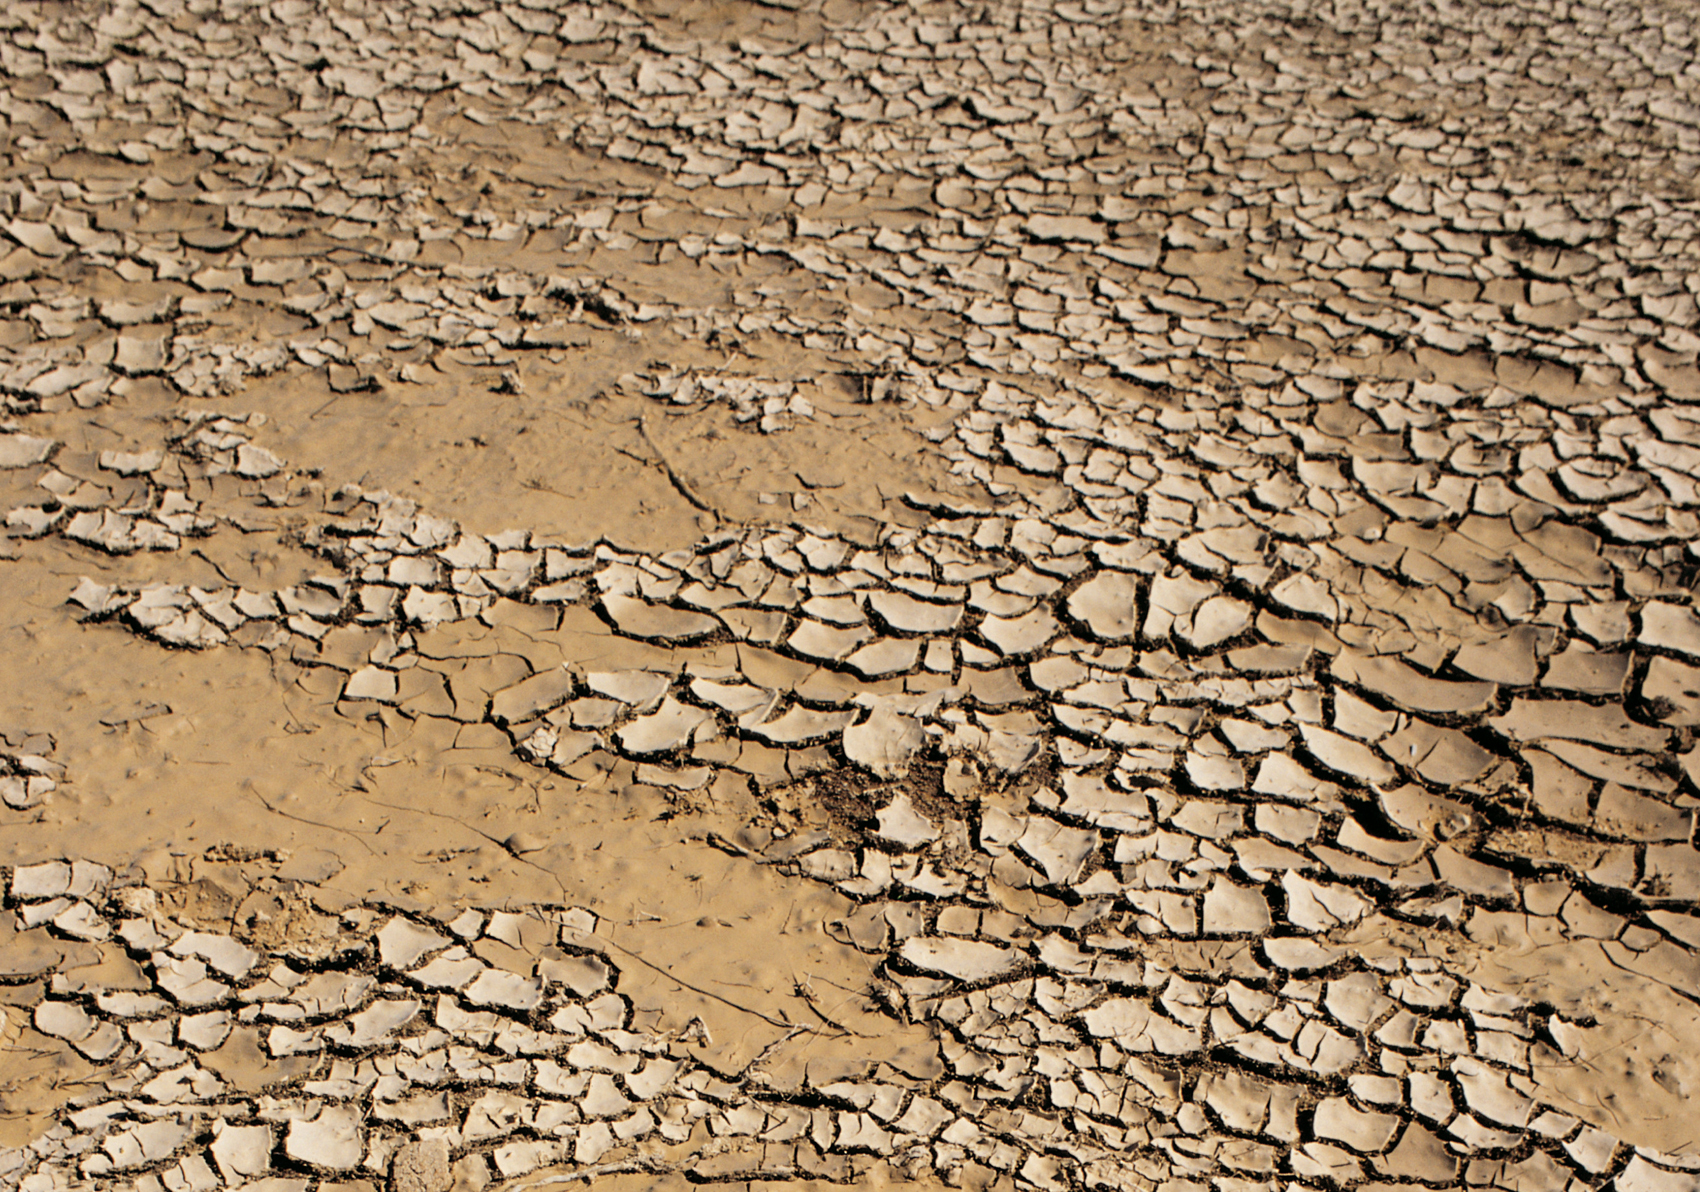 Ten million hectares of arable land worldwide are \'lost\' every year ...